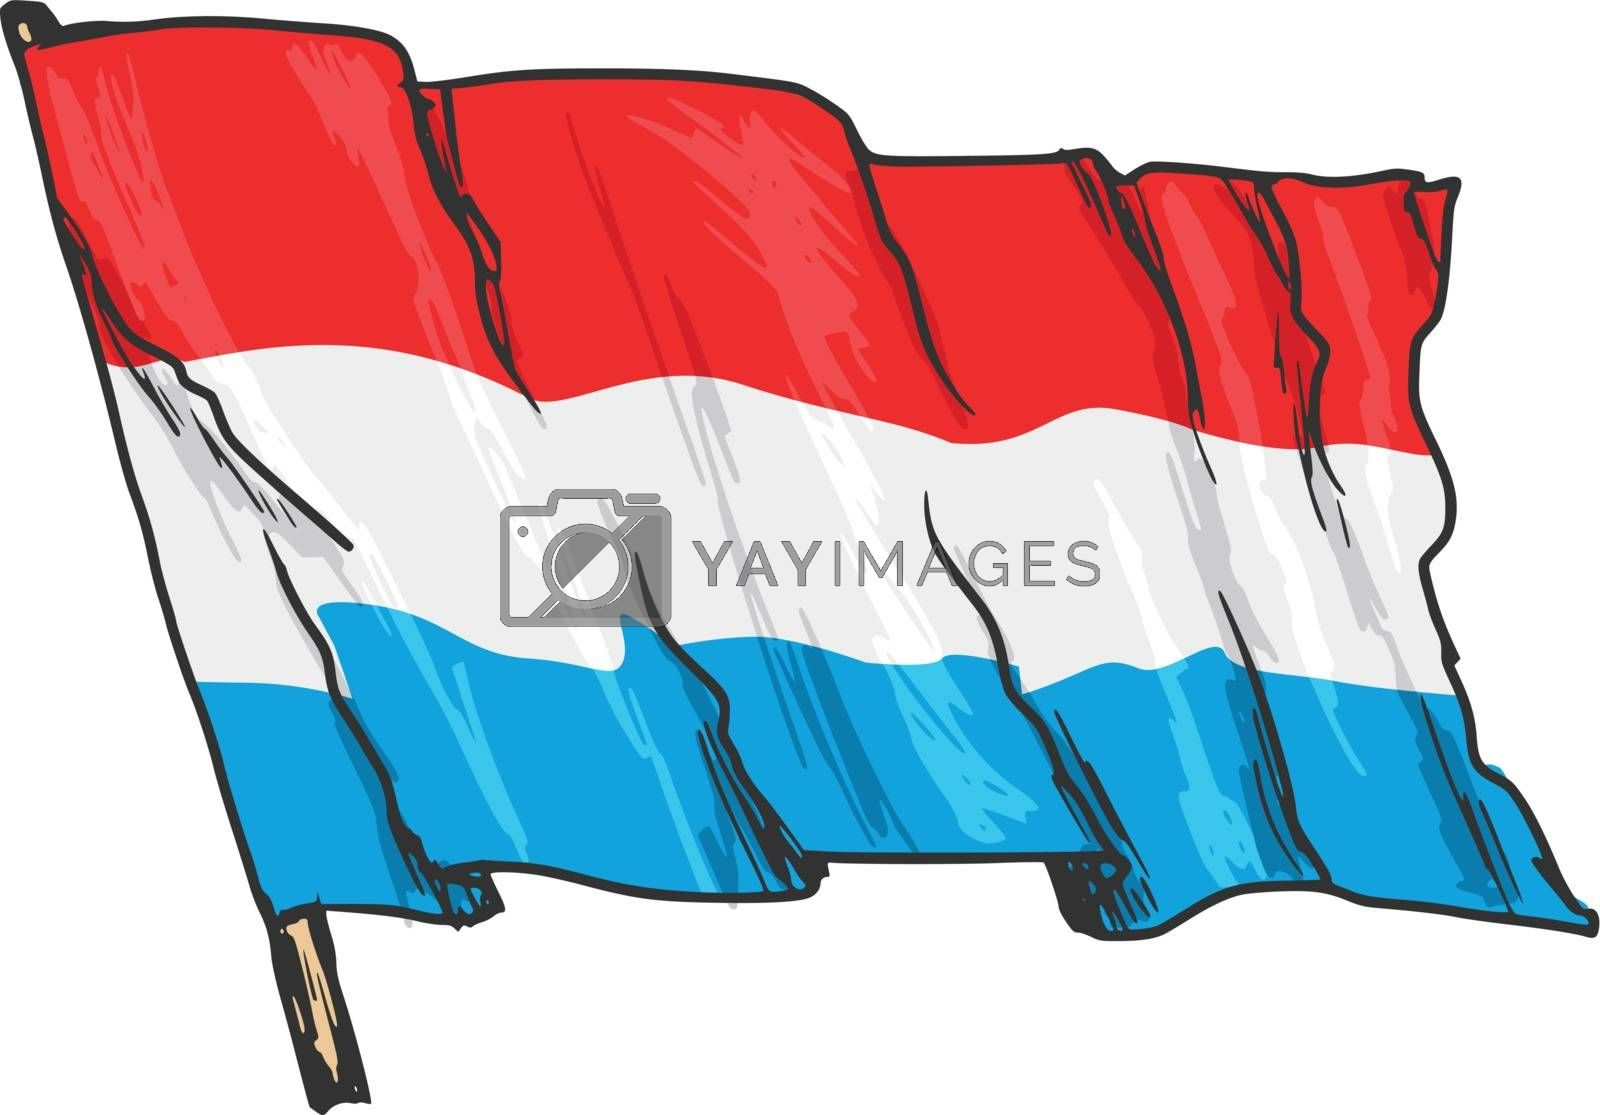 Royalty free image of flag of Luxembourg by Perysty